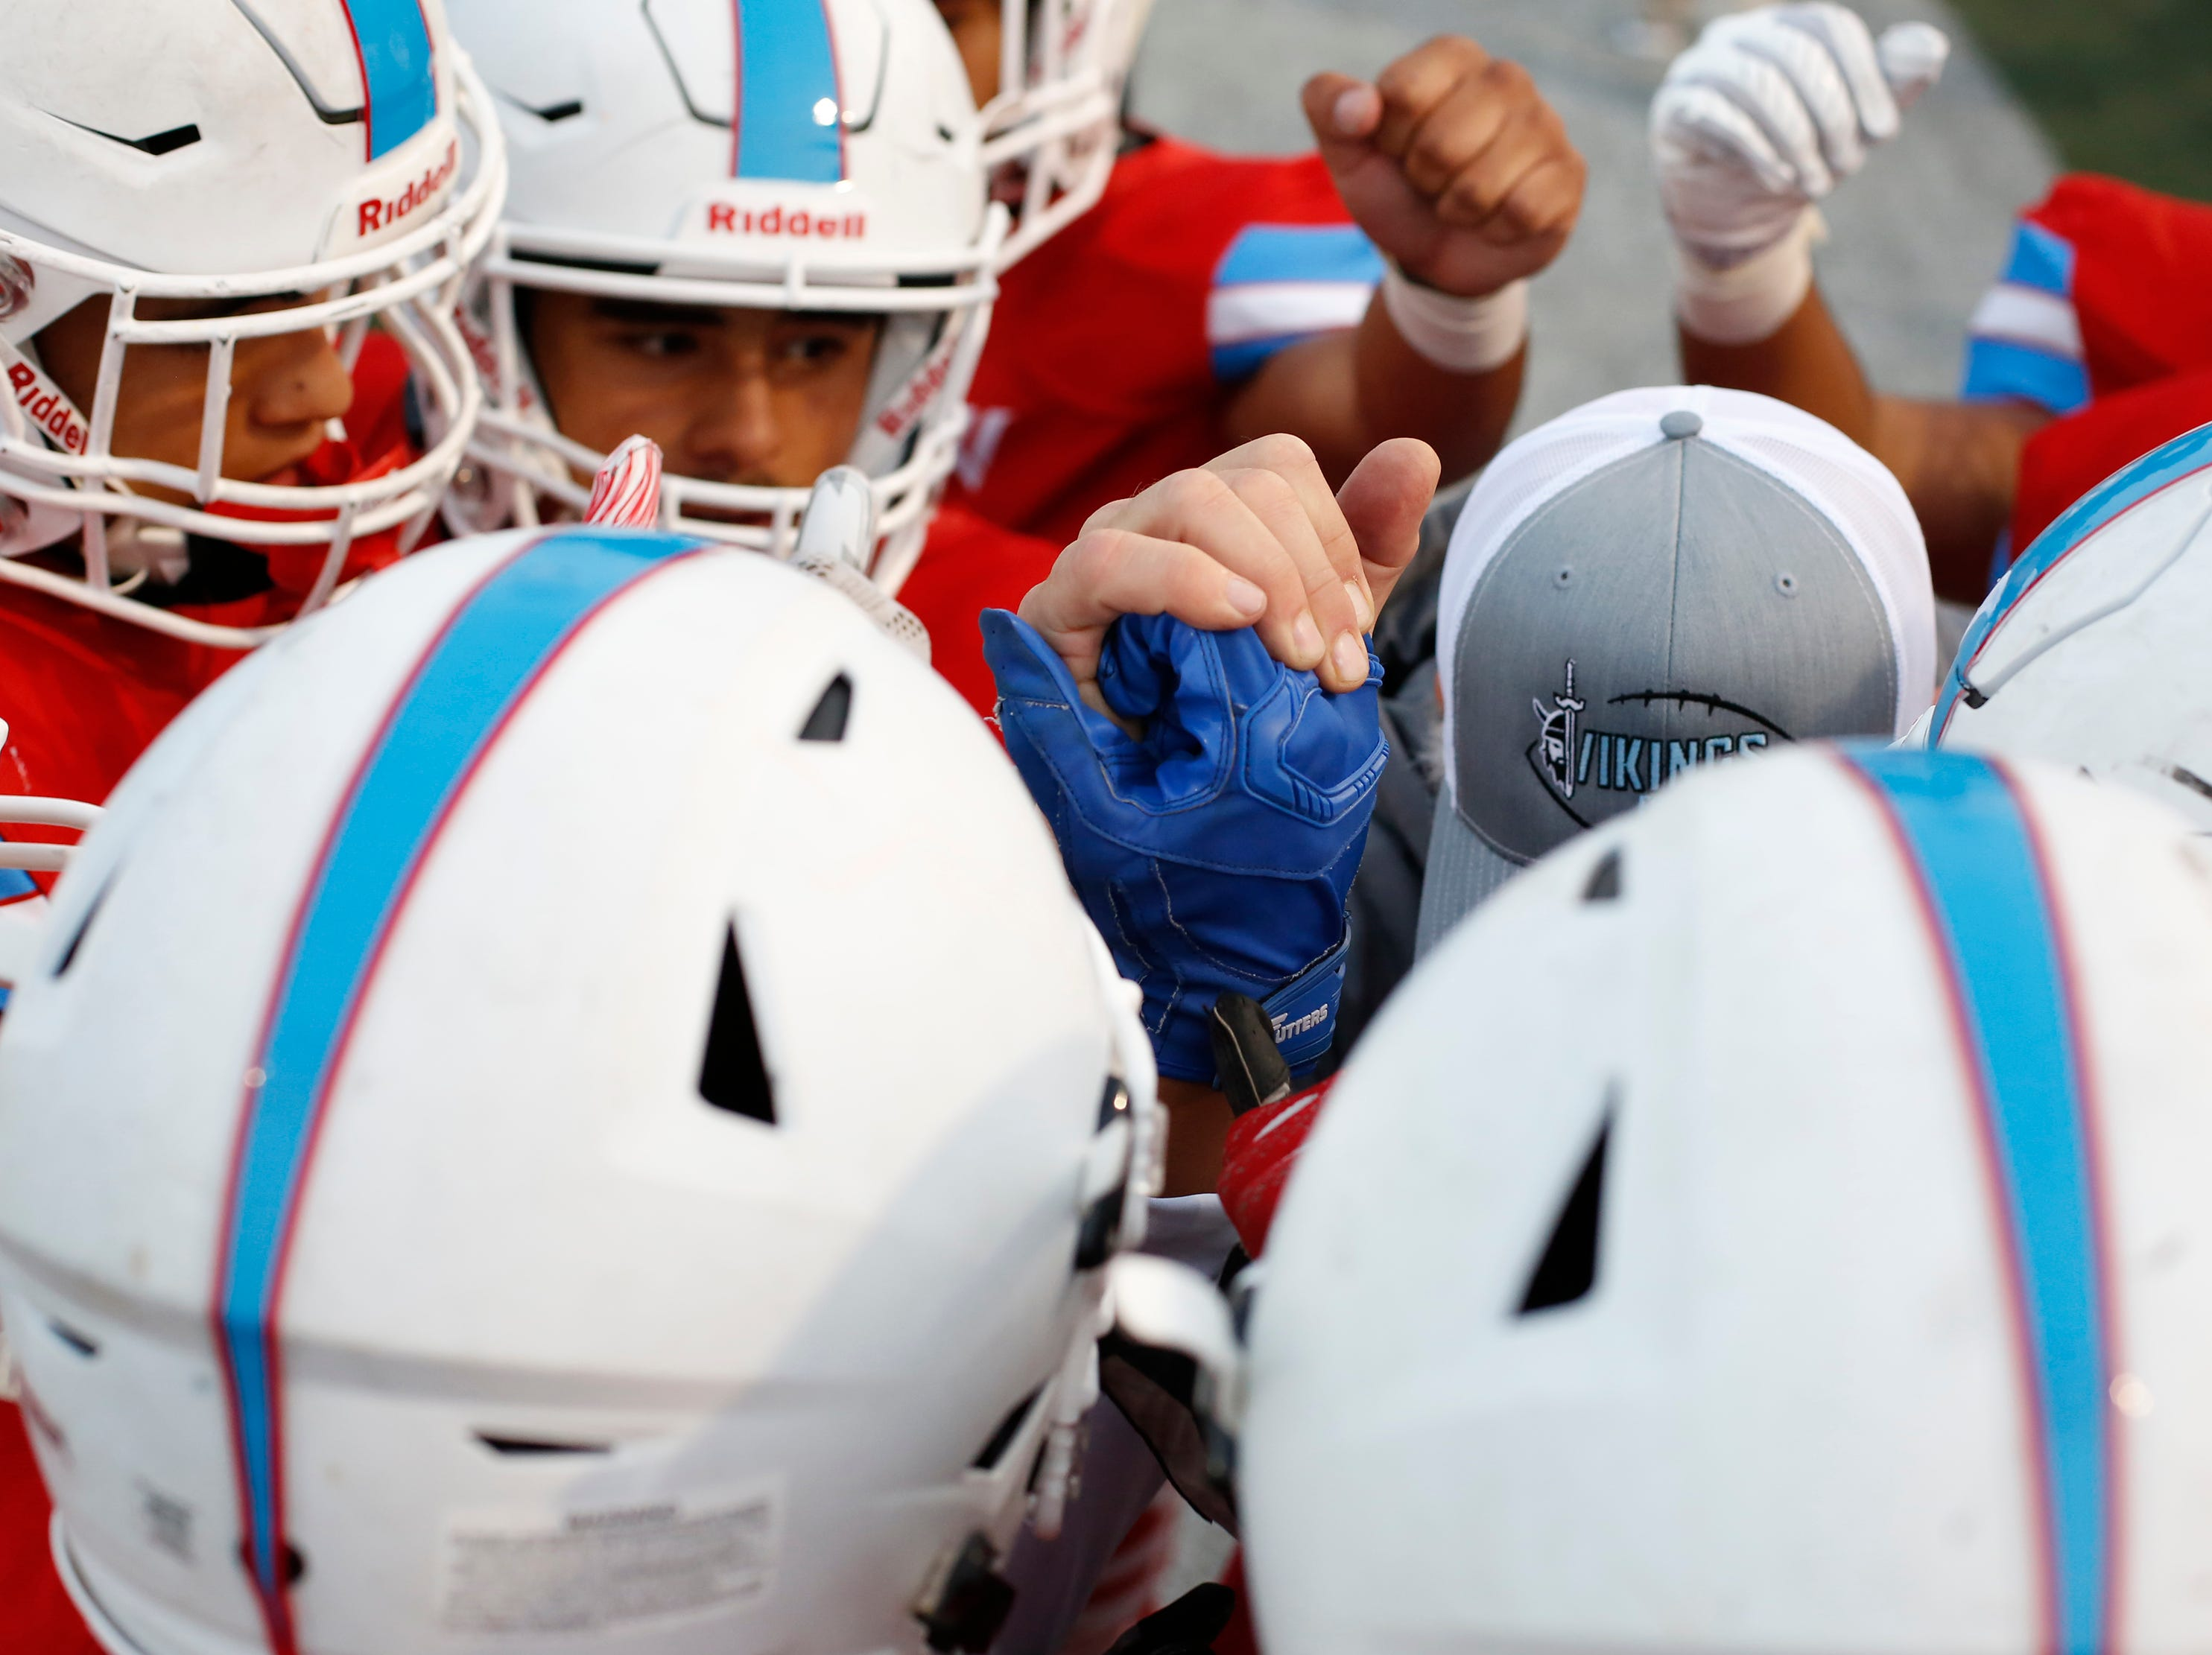 North Salinas players huddle up before taking the field against North Monterey County during football at Rabobank Stadium in Salinas on Thursday August 23, 2018.